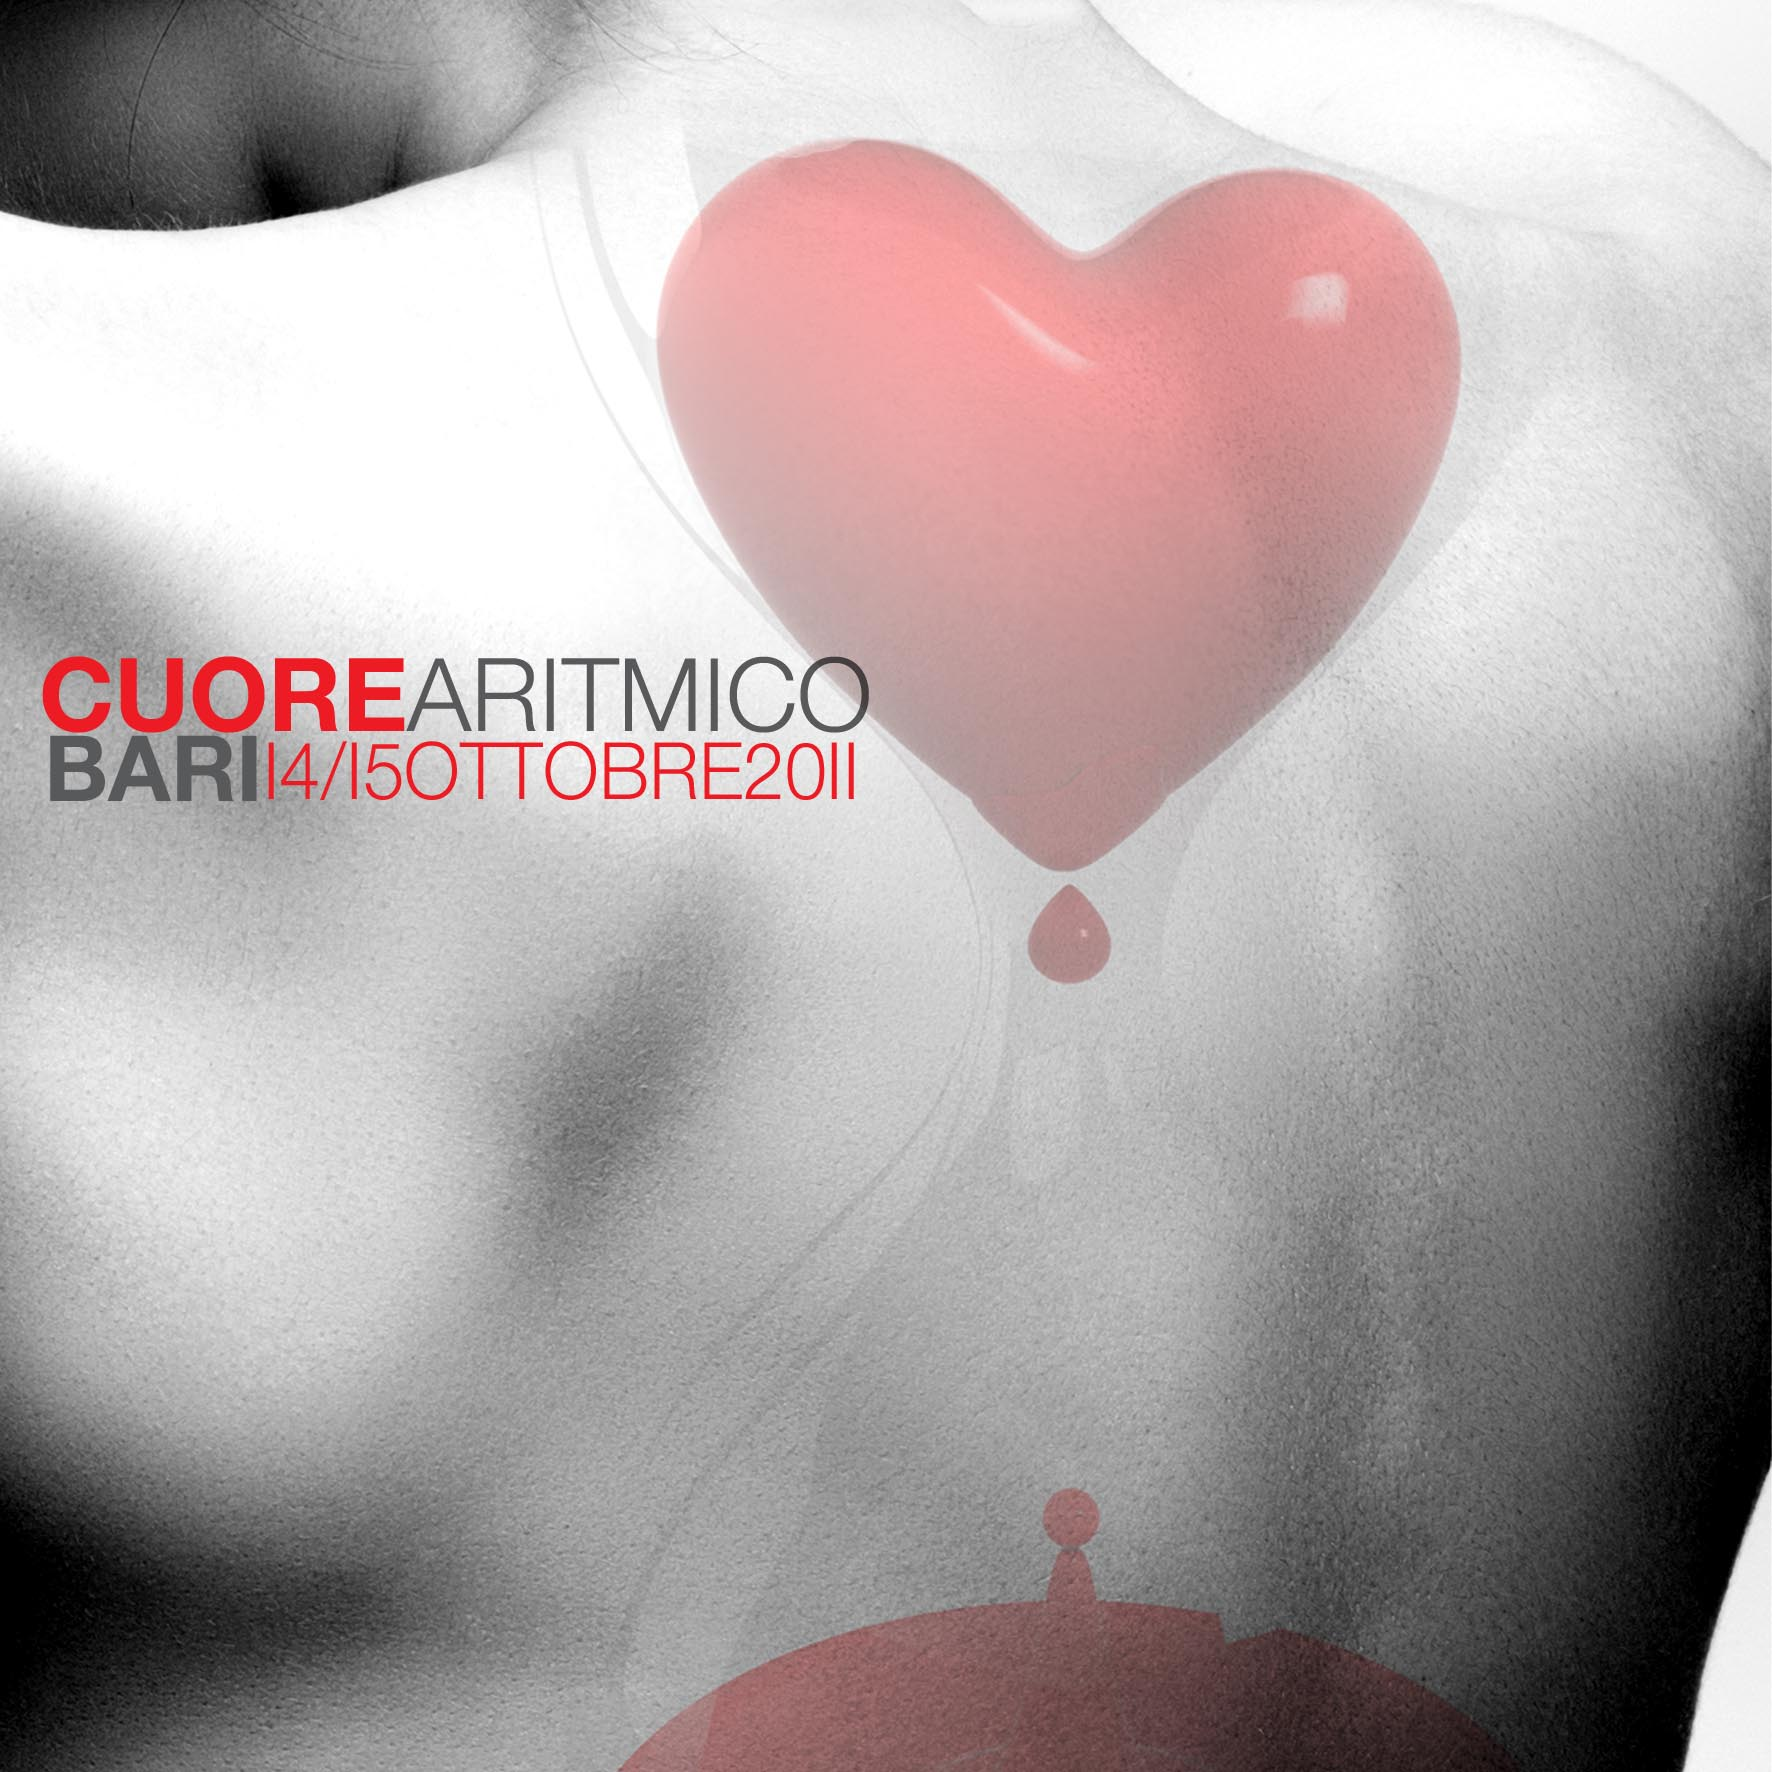 ClabMeeting - CUORE ARITMICO